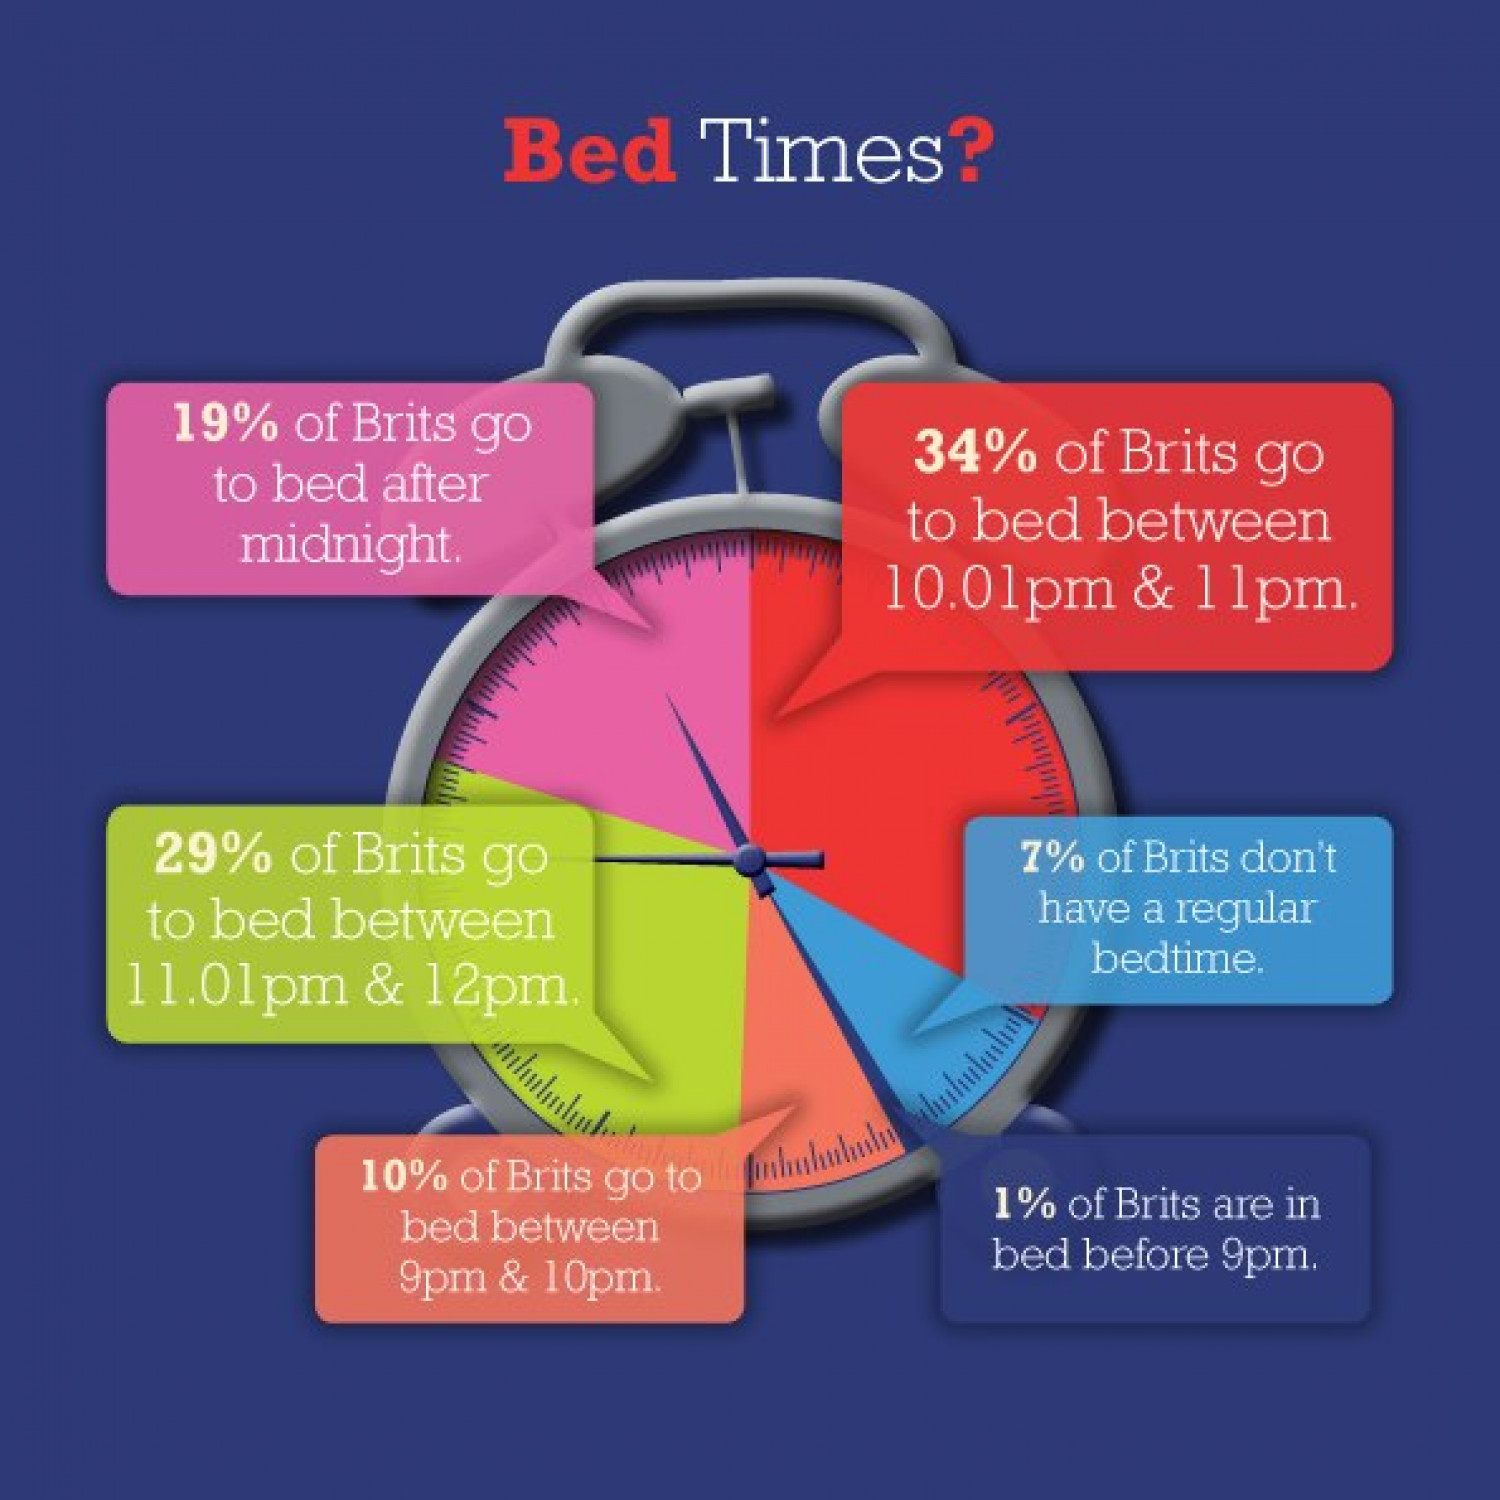 Bed Times? UK Infographic